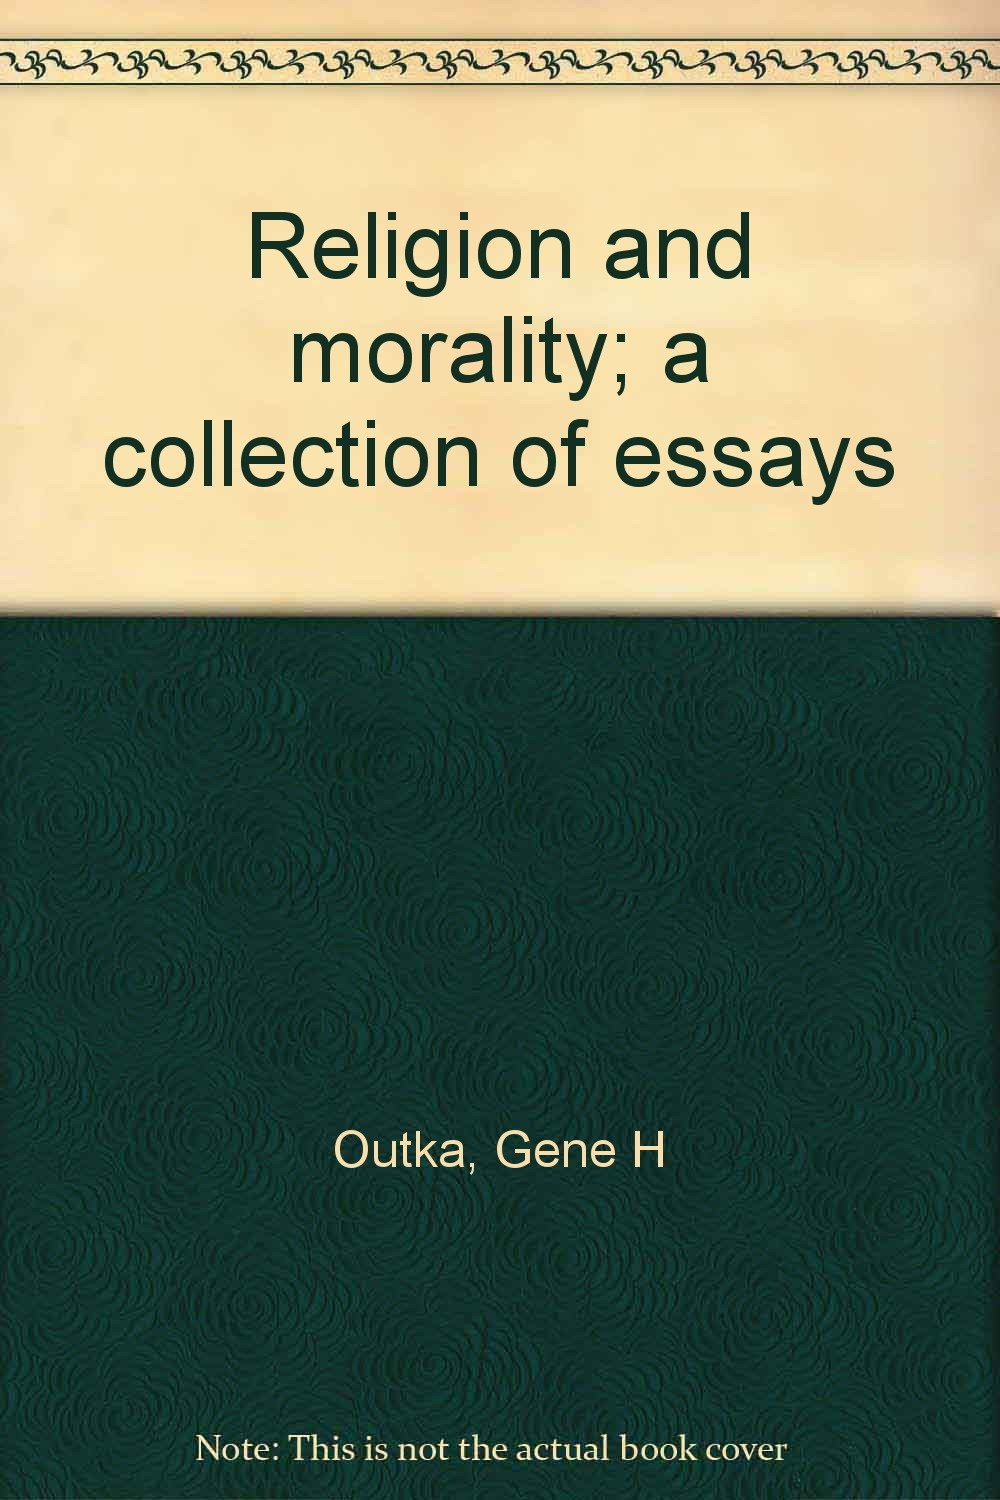 morality and person essay Essay on morality: free examples of essays, research and term papers examples of morality essay topics, questions and thesis satatements.